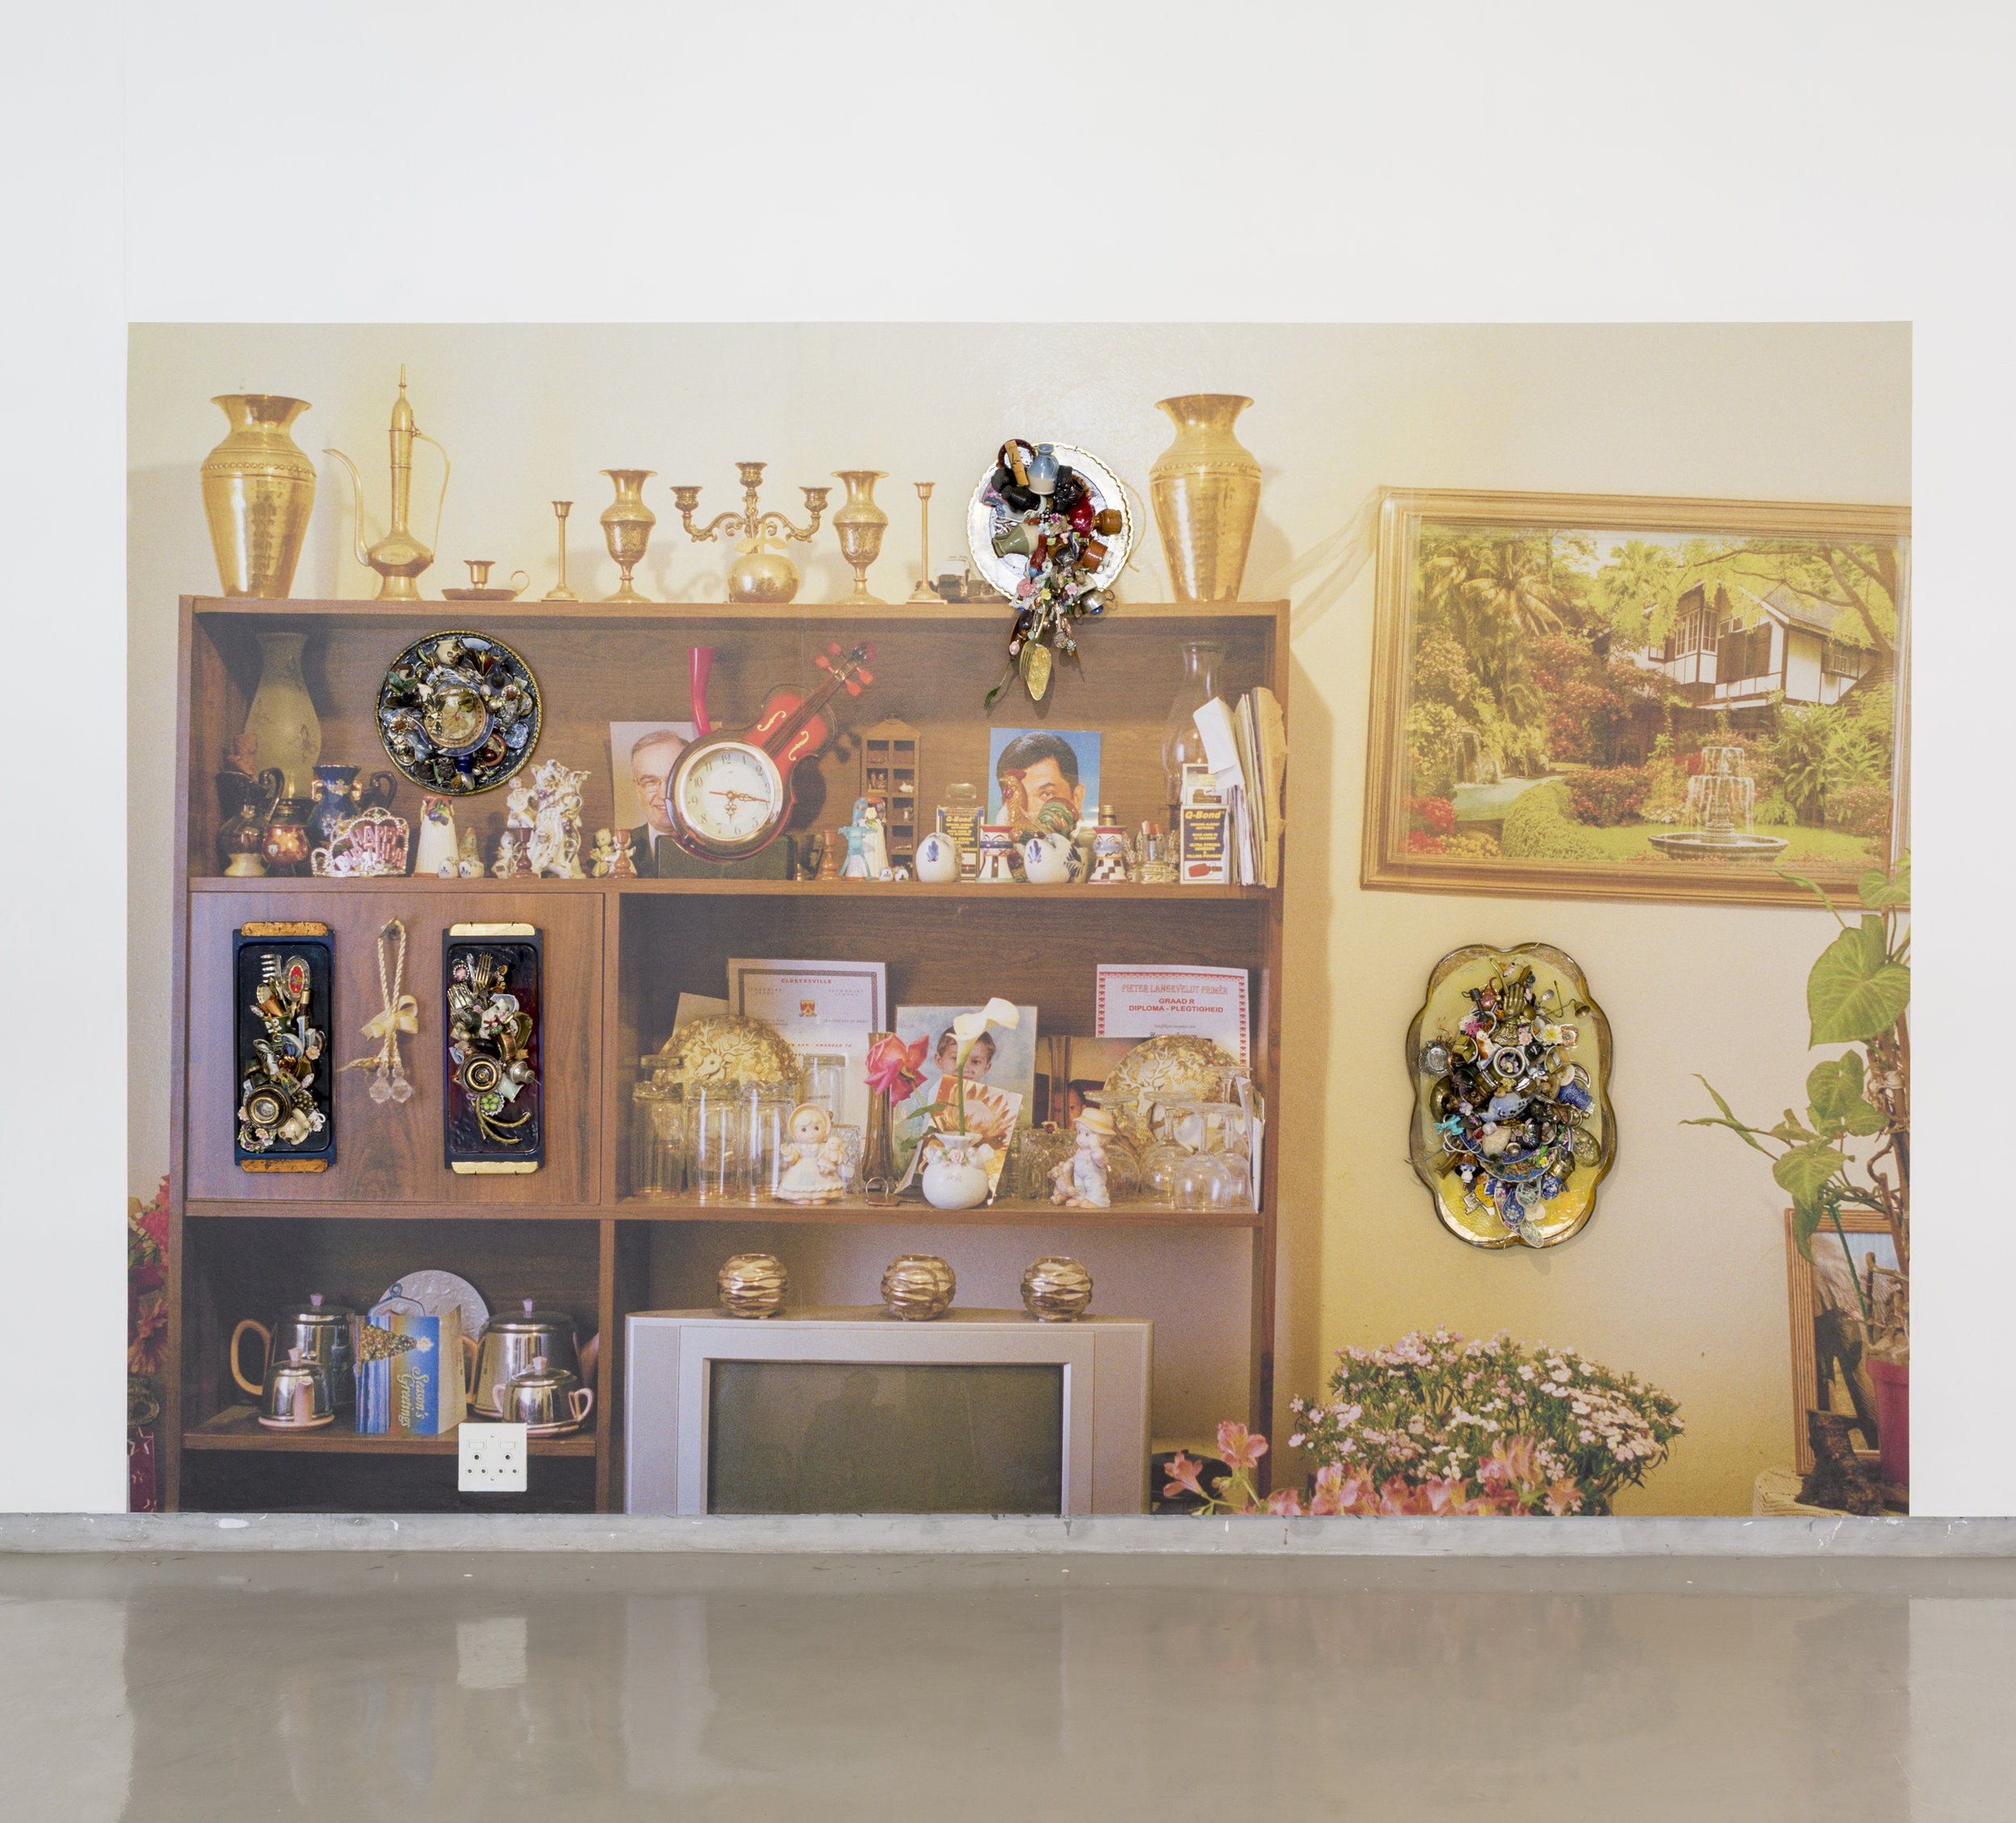 Installation view: Cape to Tehran - curated by     Sepideh Mehraban     |   Installation view credit: Kleinjan Groenewald courtesy of   Gallery MOMO